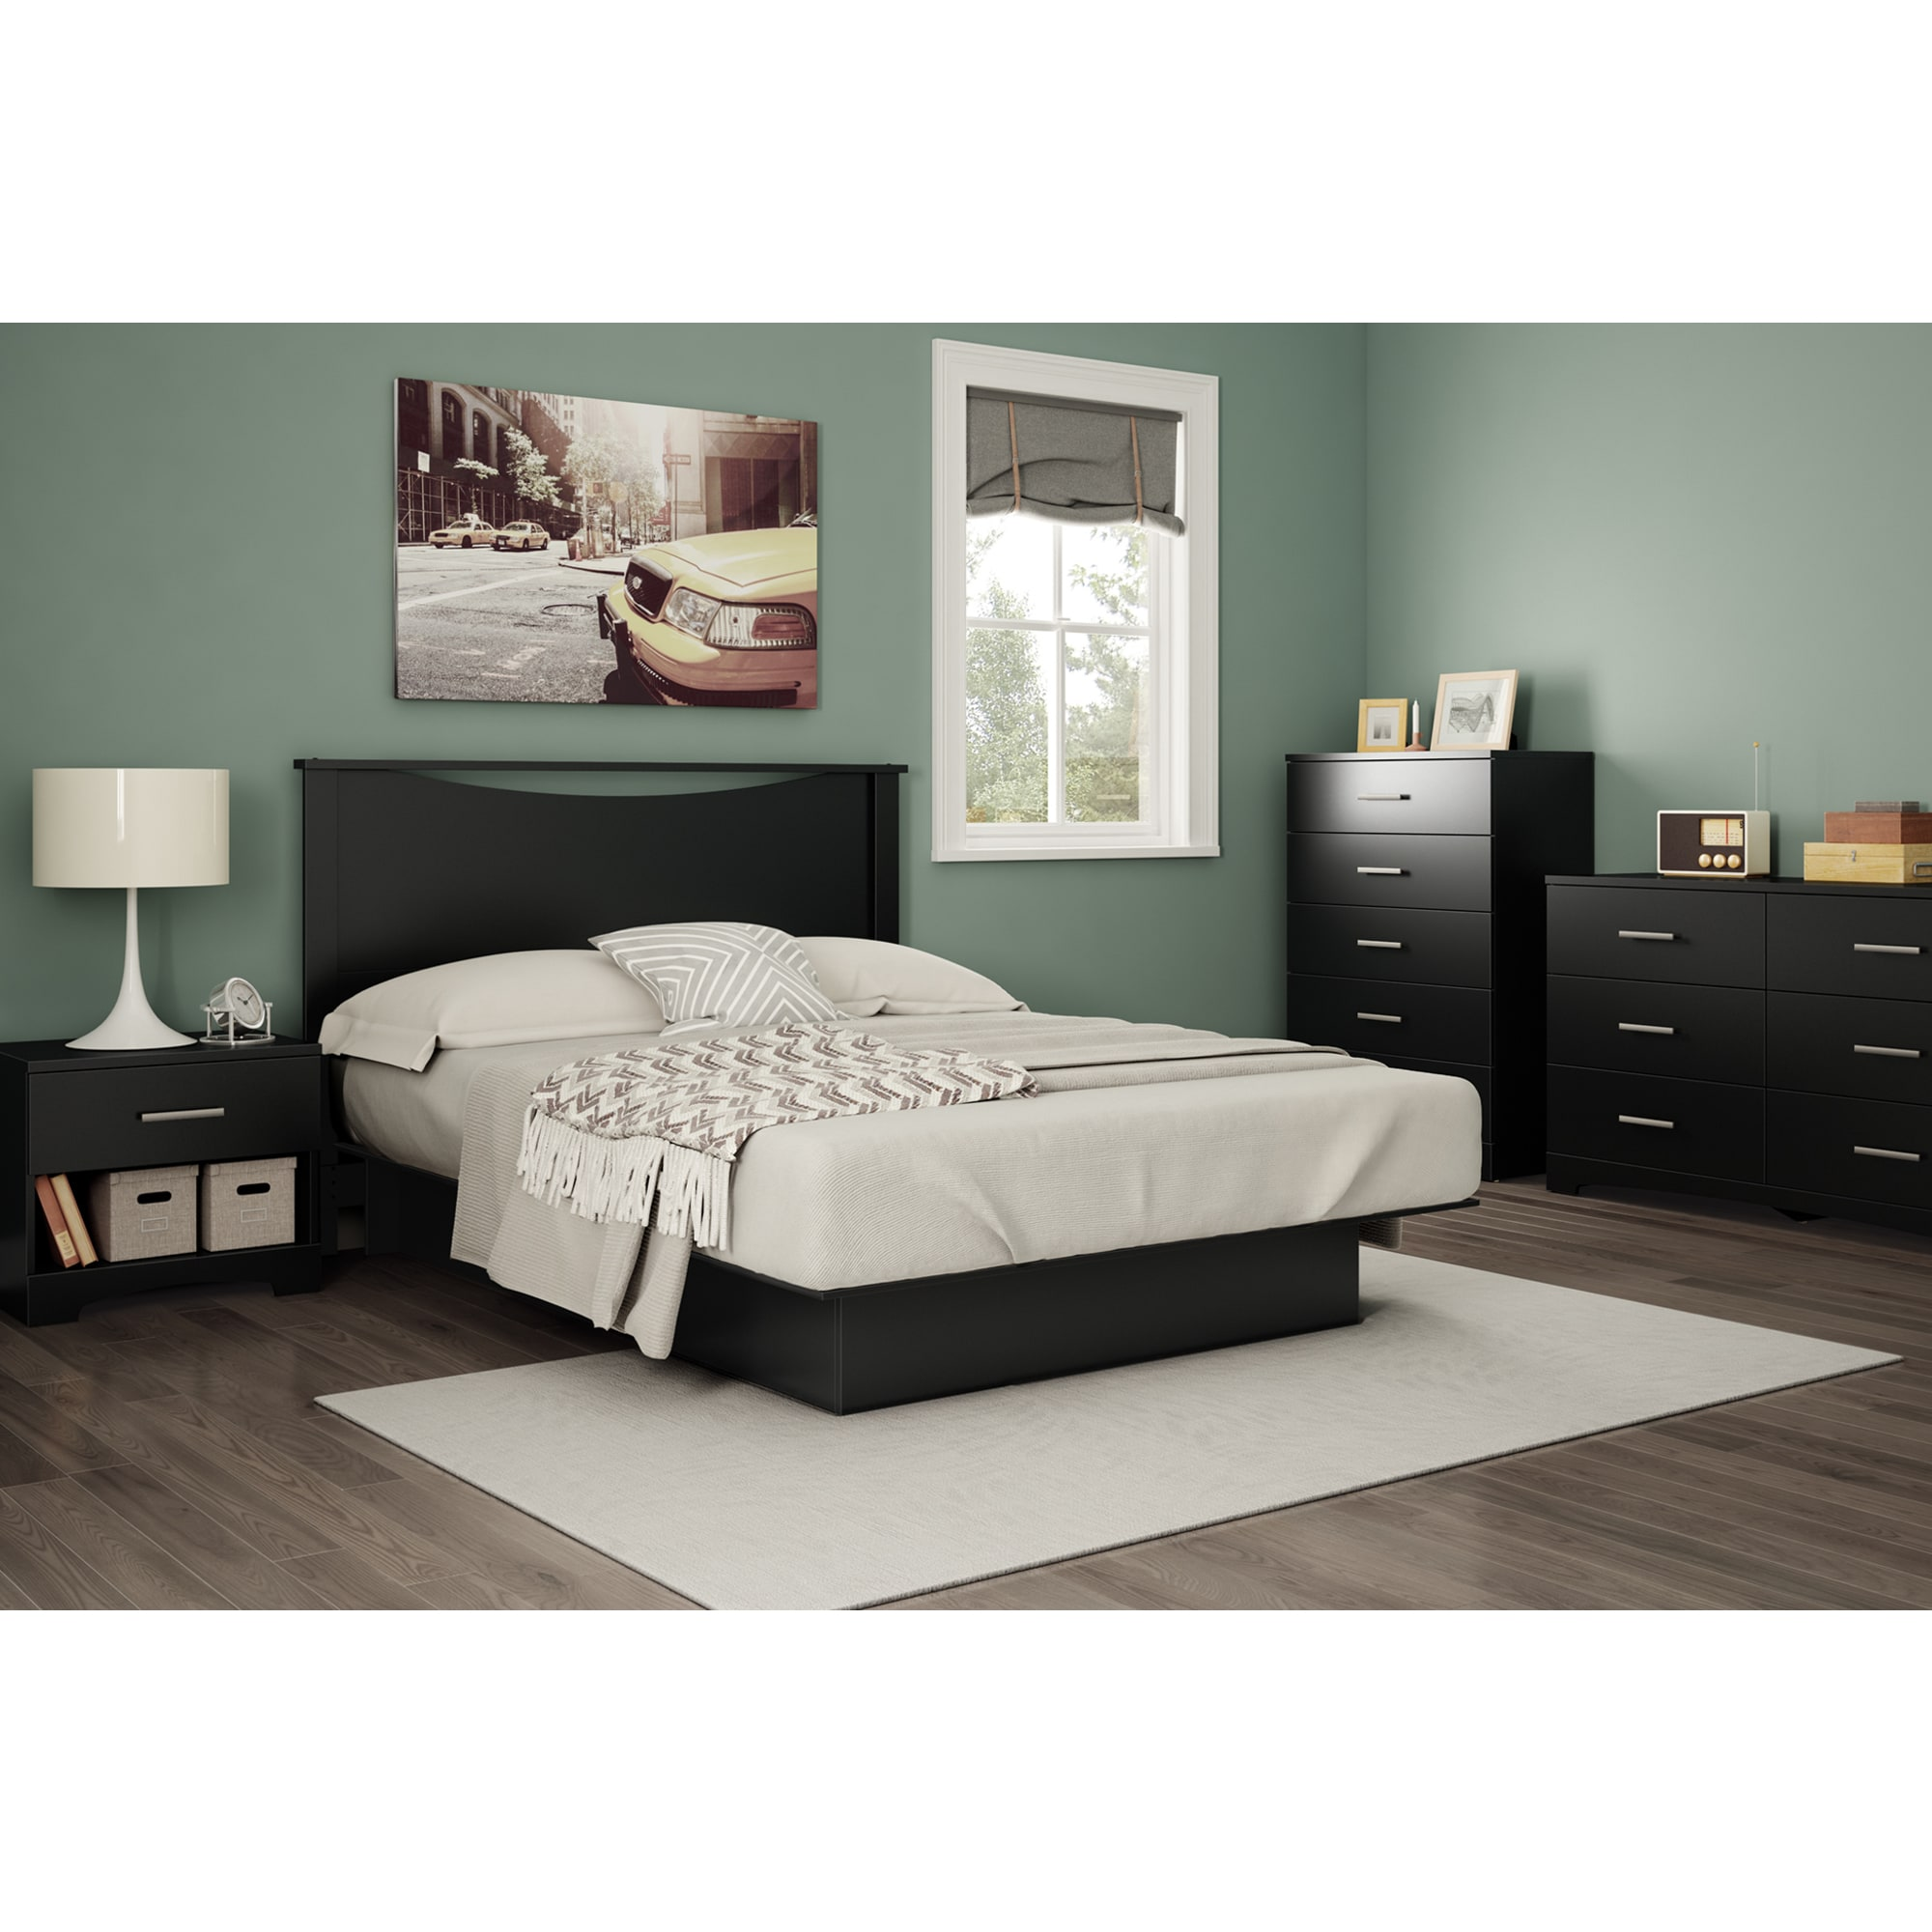 South-Shore-Gramercy-Single-drawer-Nightstand thumbnail 9